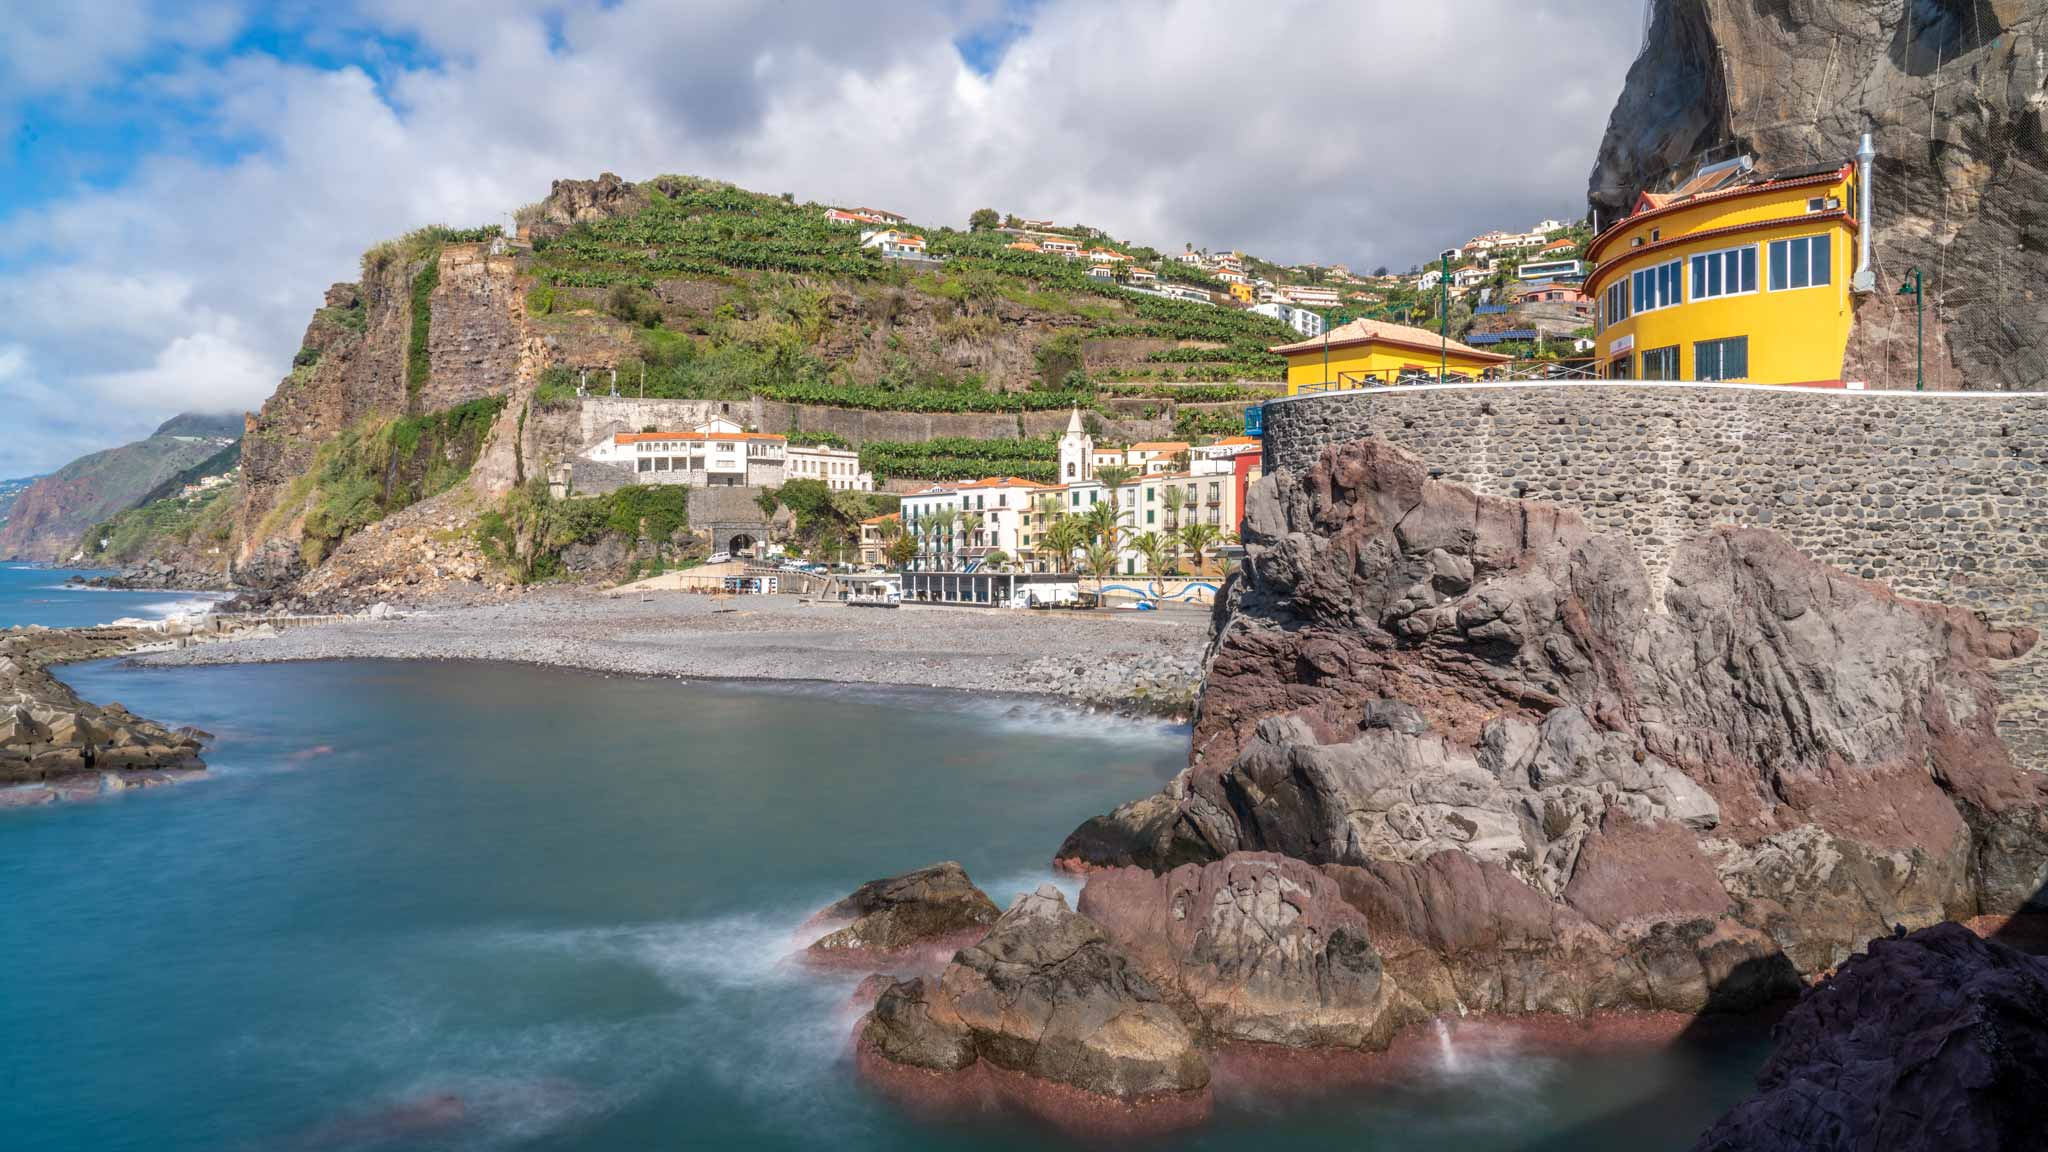 The village of Ponto do Sol in Madeira, with green hills and a small bay for swimming